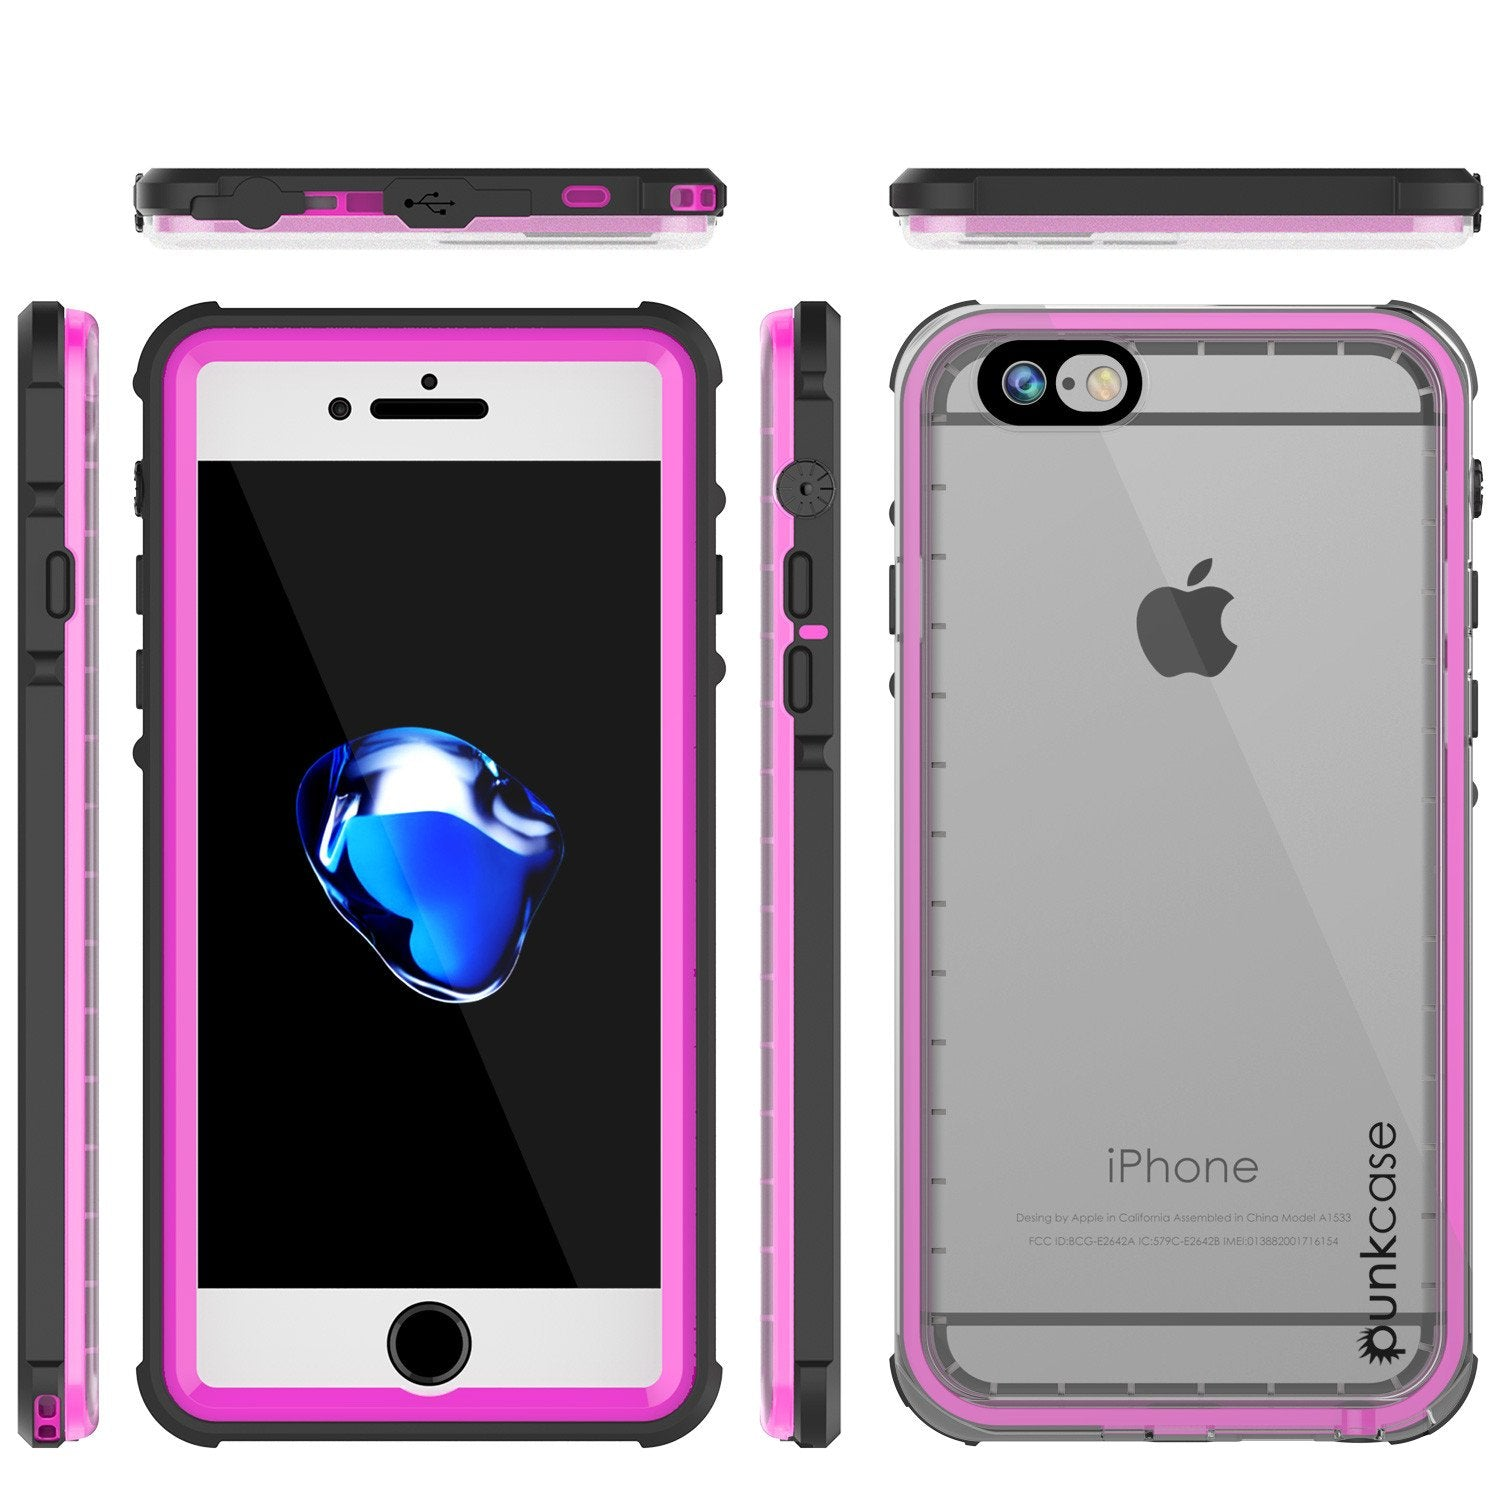 Apple iPhone 7 Waterproof Case, PUNKcase CRYSTAL Pink W/ Attached Screen Protector  | Warranty - PunkCase NZ